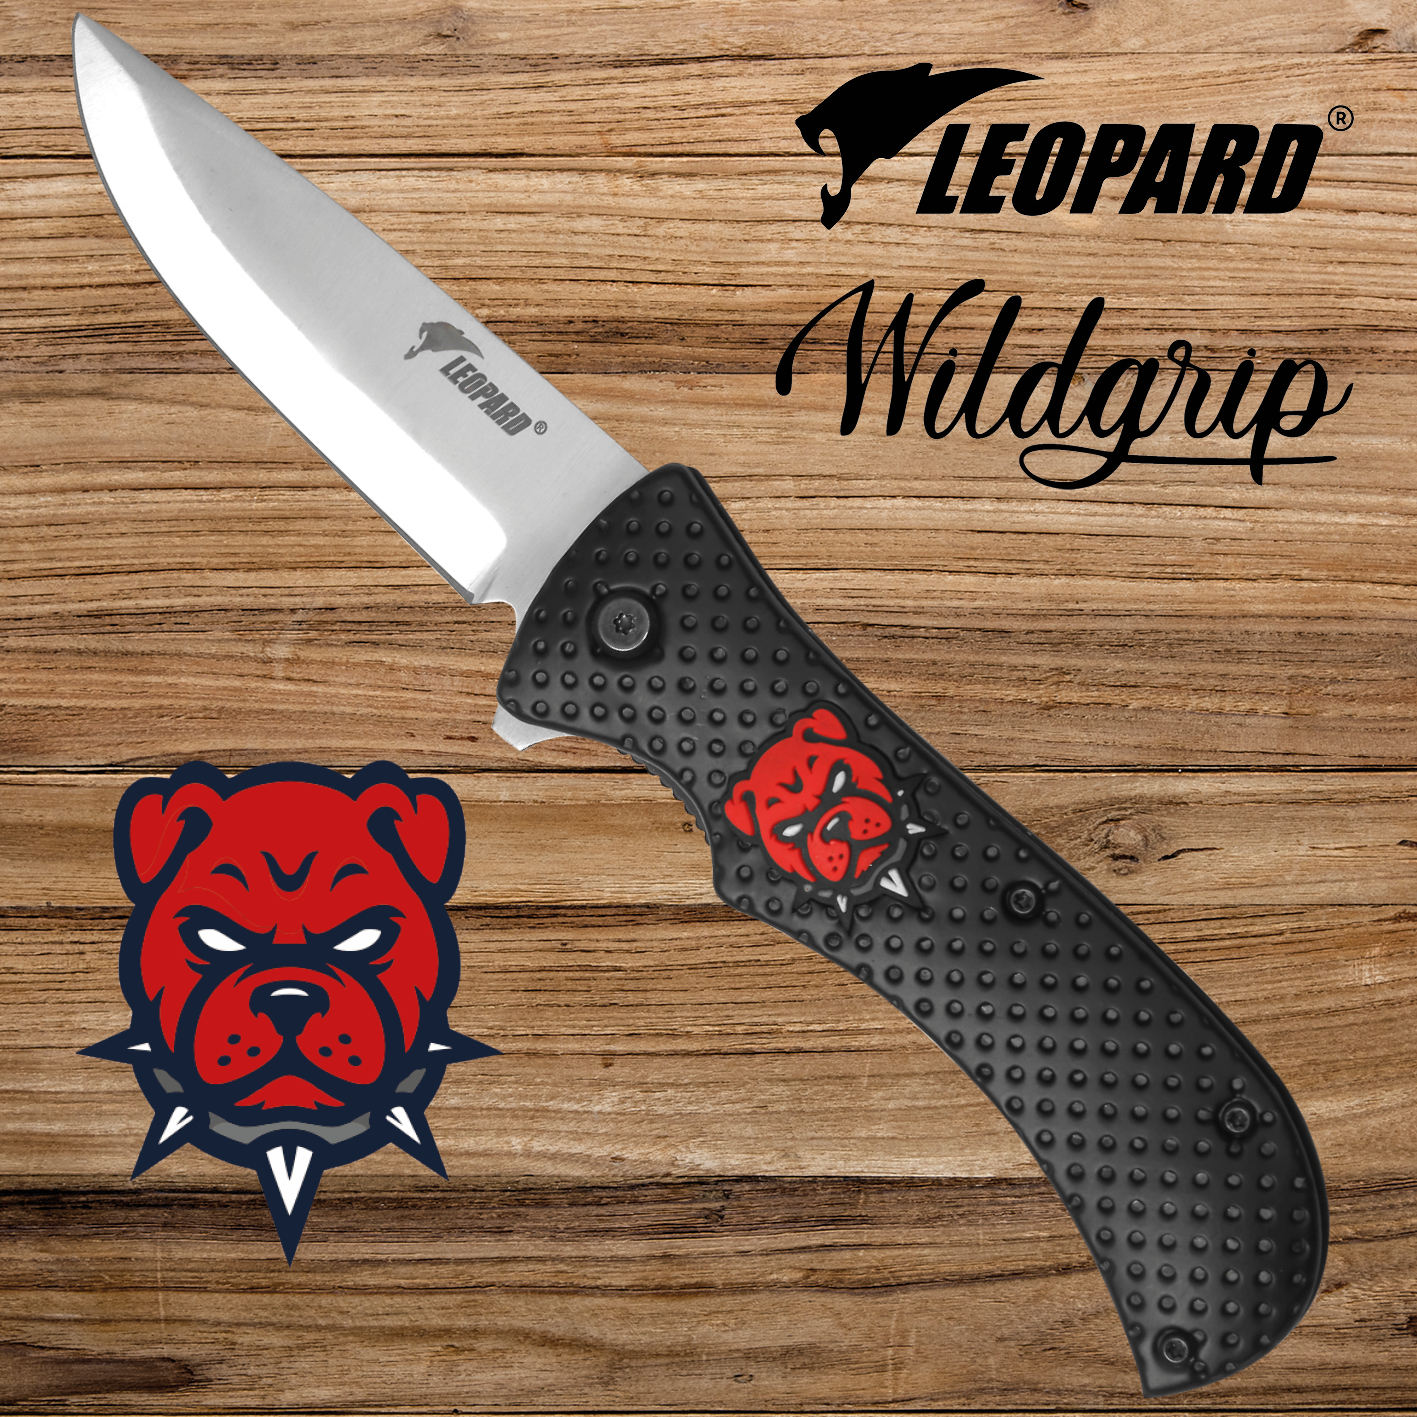 WILDGRIP EDC knives & folding pocket knife with bulldog head - Rescue, survival & outdoor knives use - 48h Fast Europe delivery